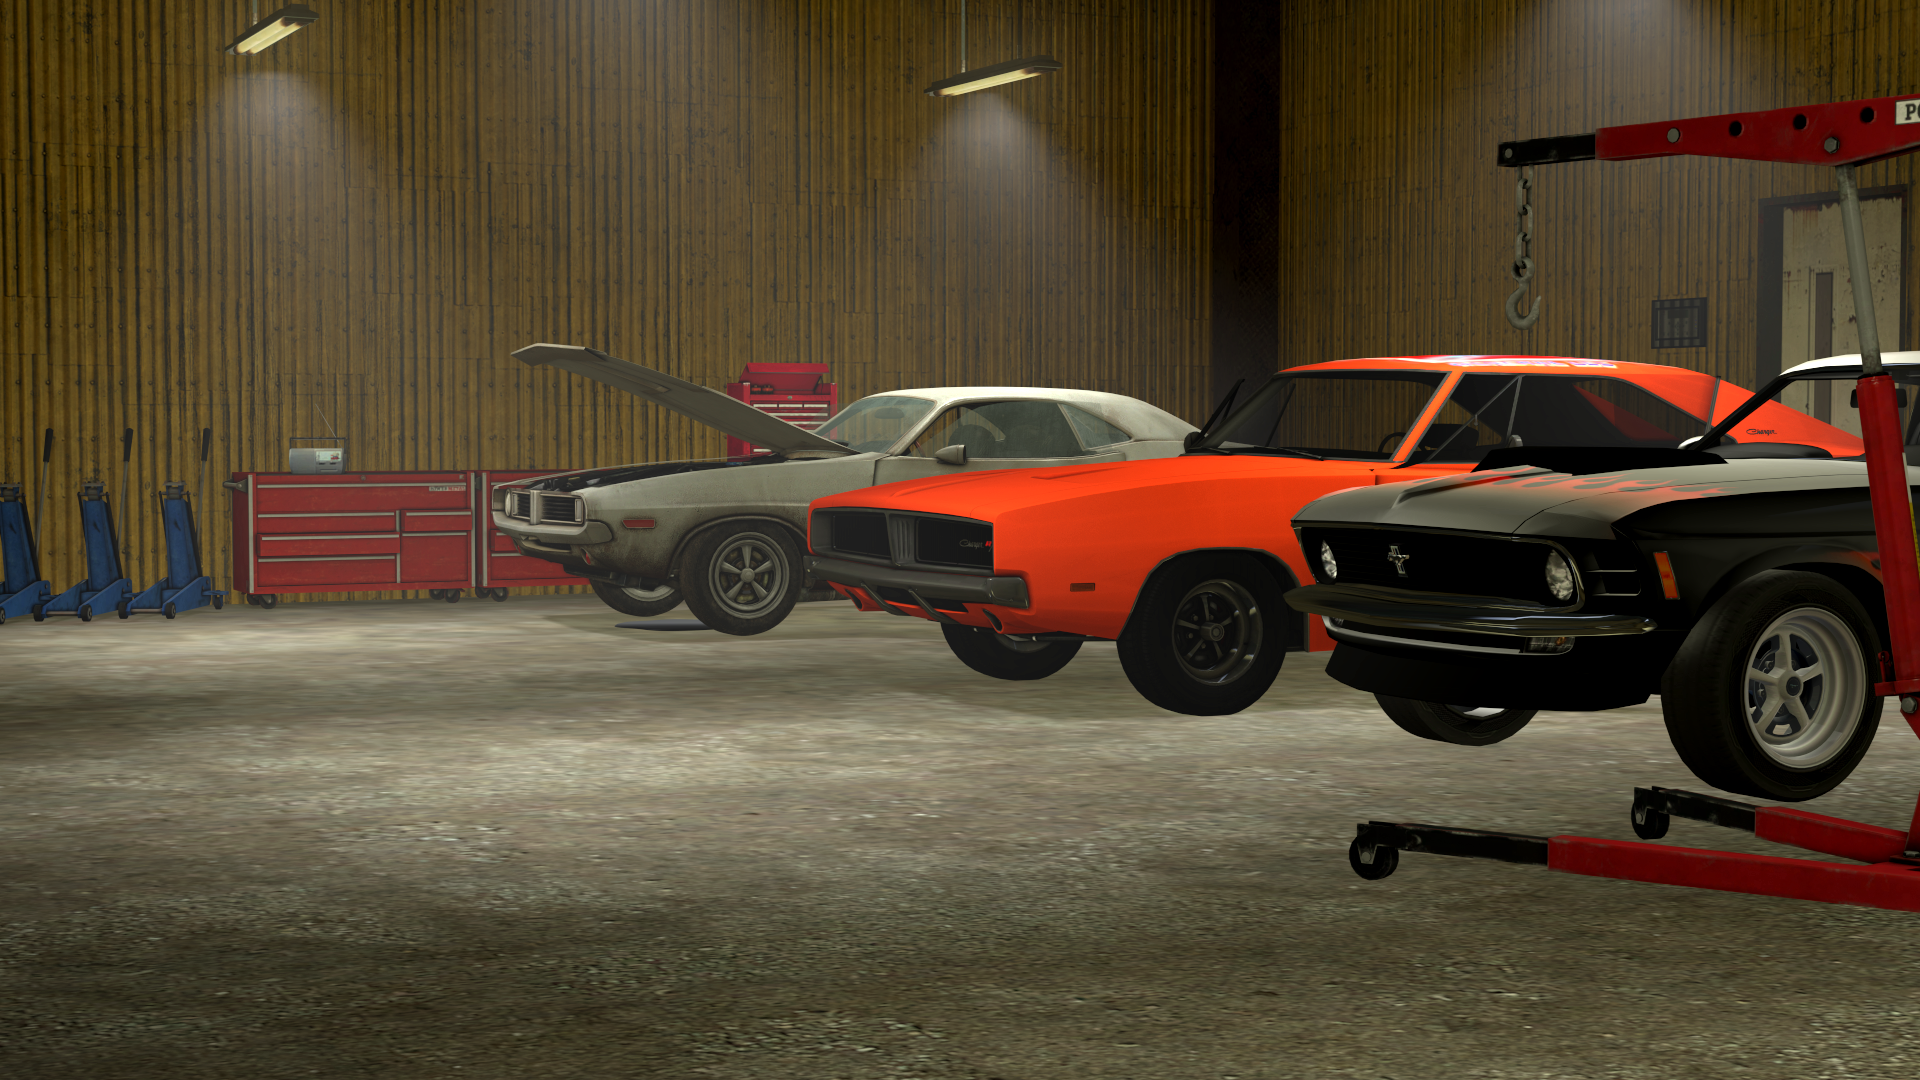 SFM) Muscle cars in the garage by TheBRSteamer95 on DeviantArt